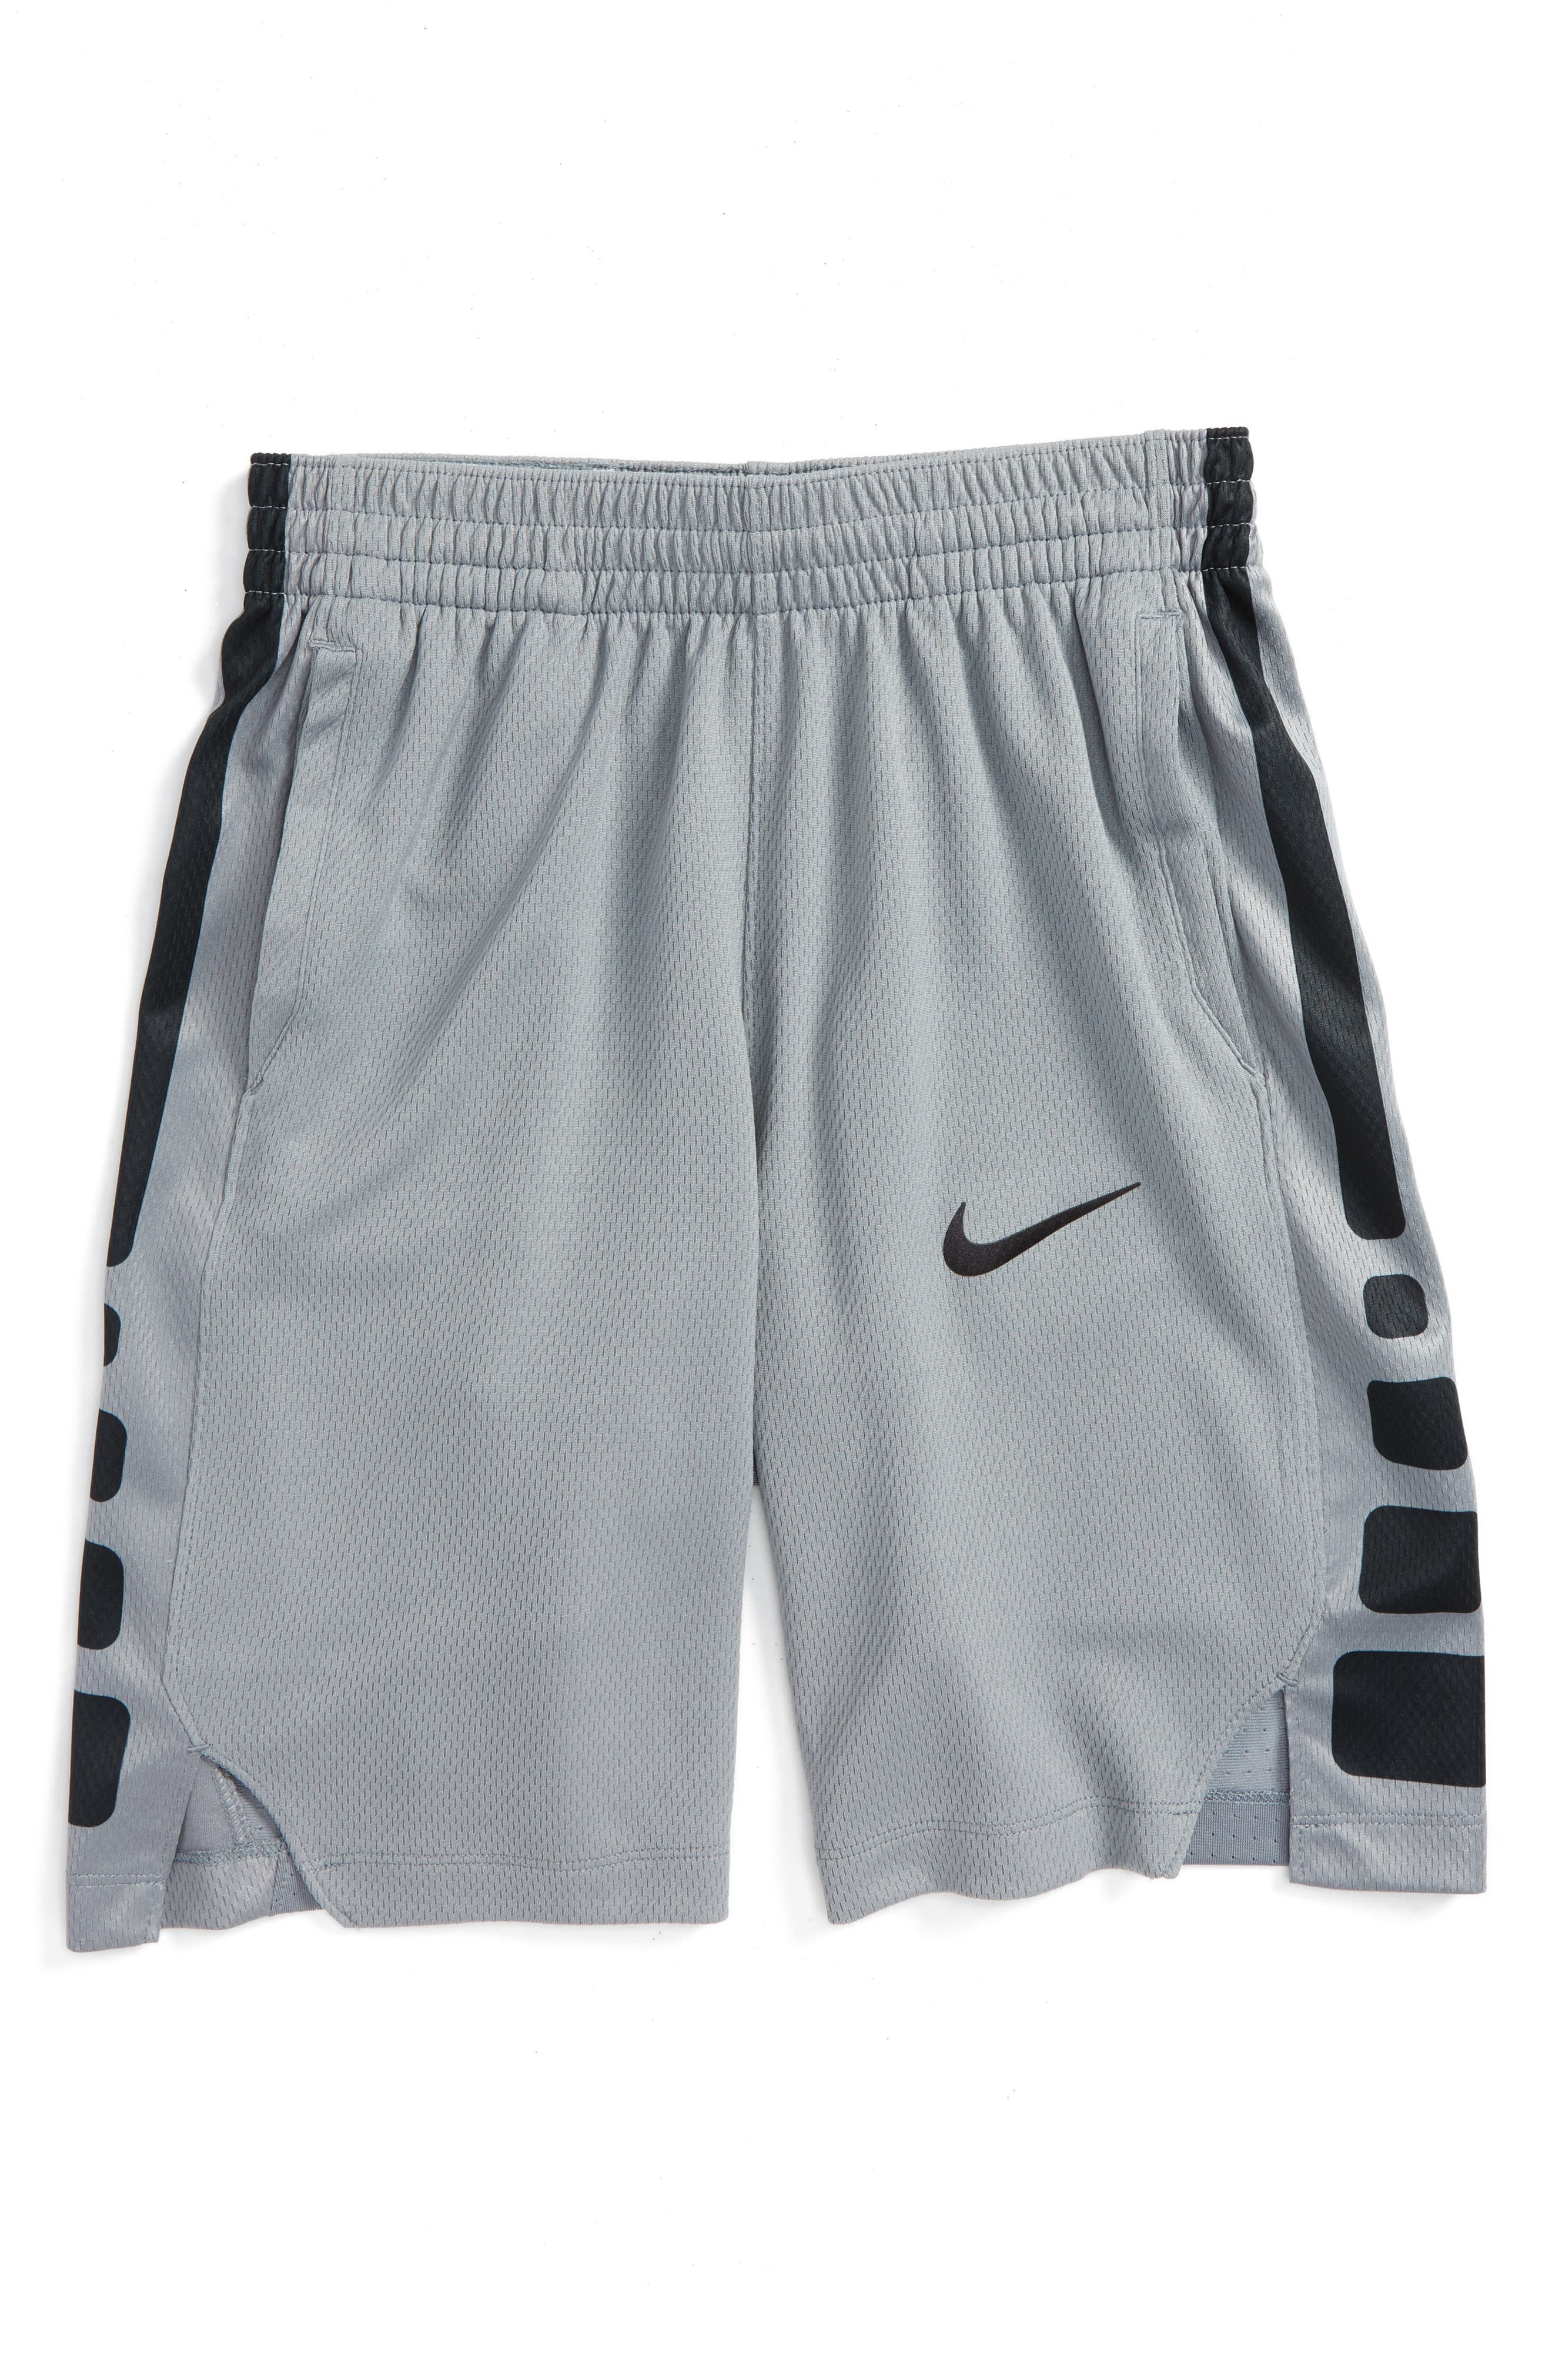 Dry Elite Basketball Shorts,                             Main thumbnail 31, color,